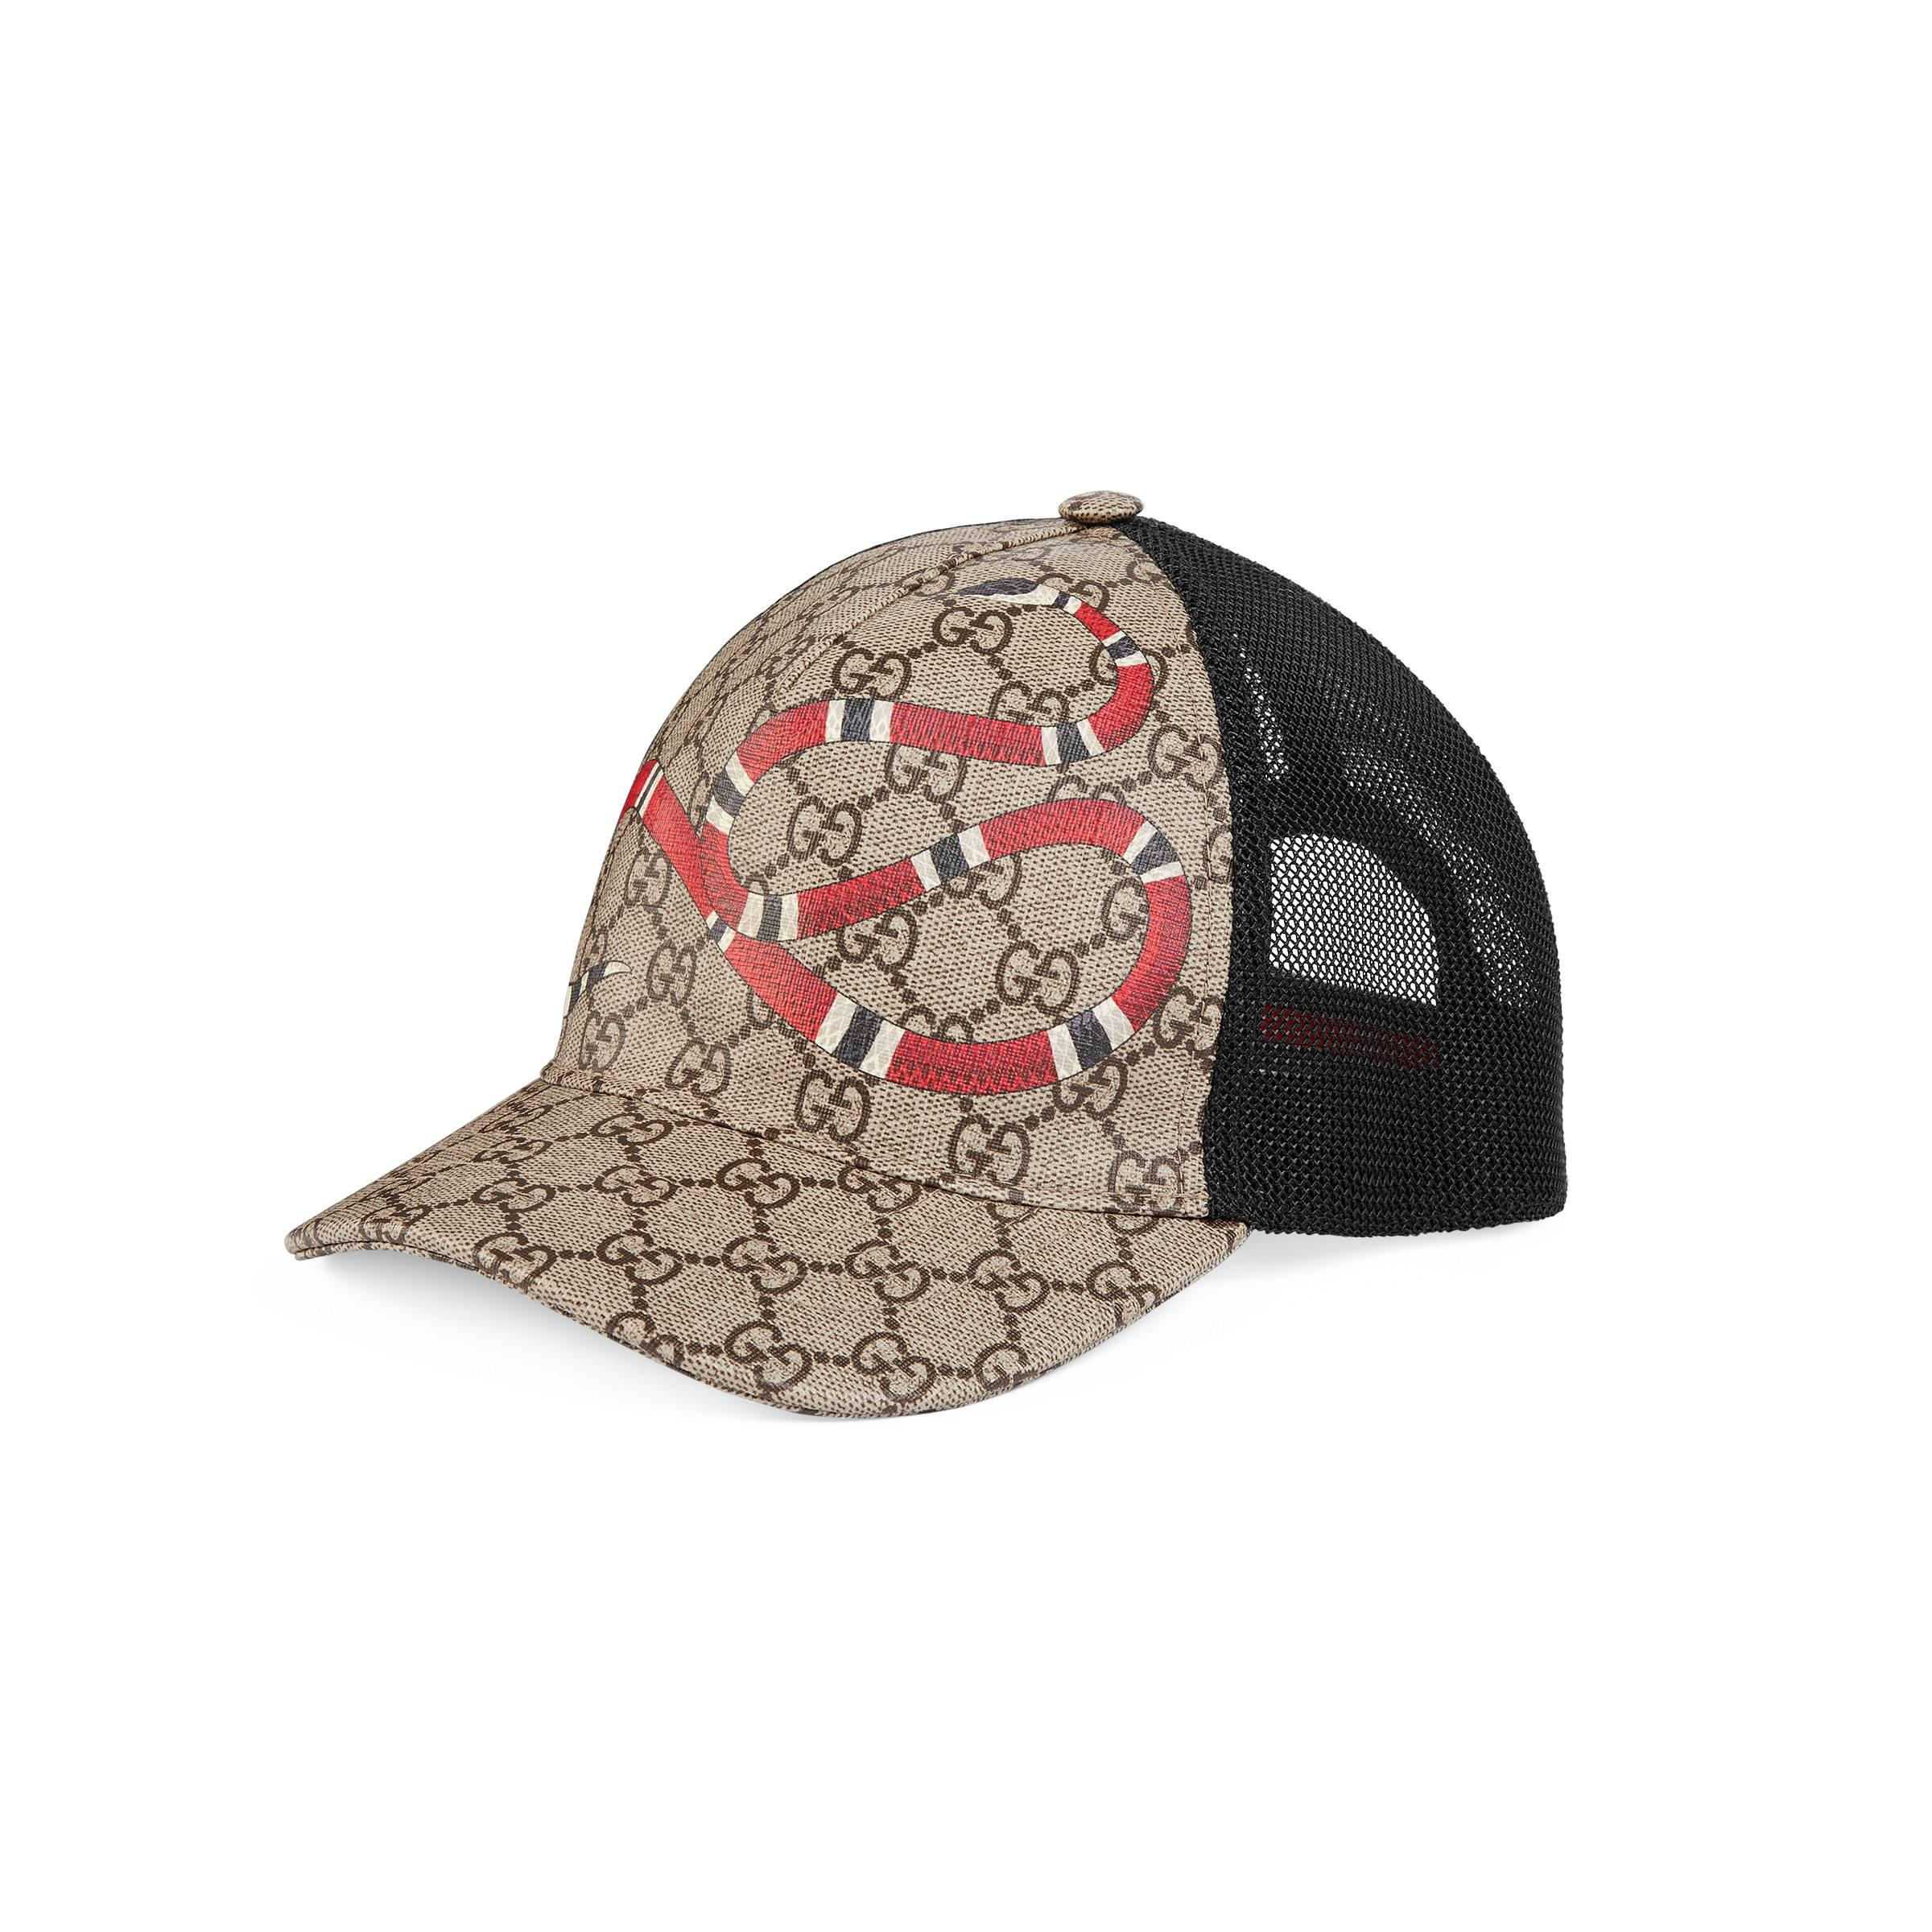 22cde3582938f Gucci Kingsnake Print Gg Supreme Baseball Hat in Natural for Men - Lyst